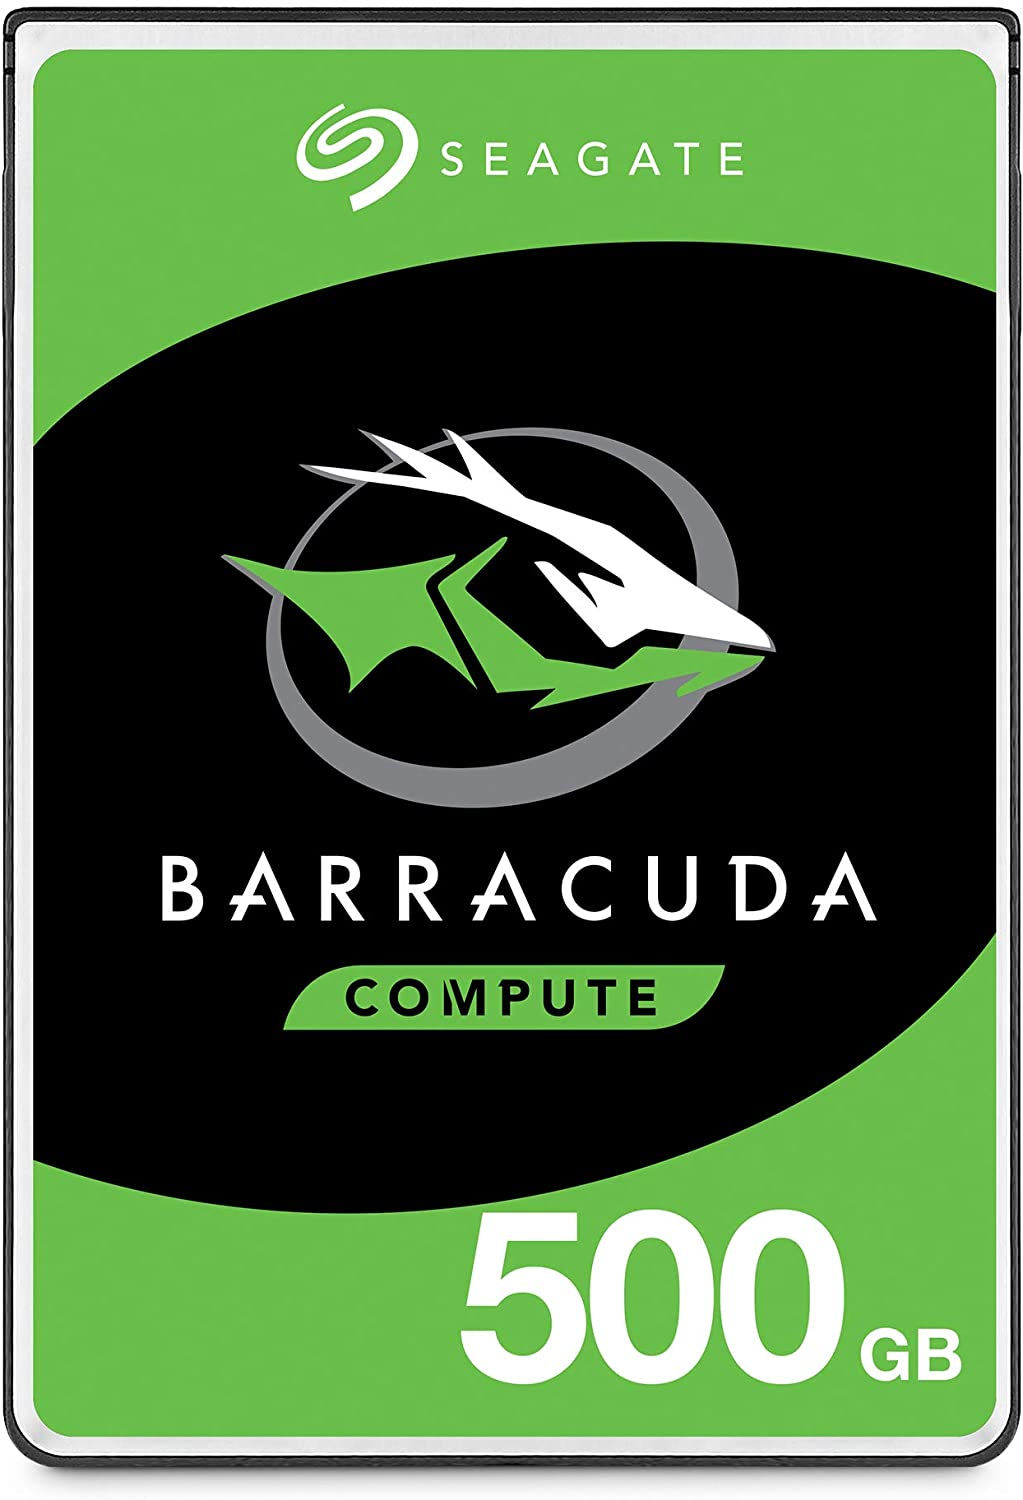 Seagate BarraCuda 500GB Internal Hard Drive HDD – 2.5 Inch SATA 6 Gb/s 5400 RPM 128MB Cache for PC Laptop – Frustration Free Packaging (ST500LM030)